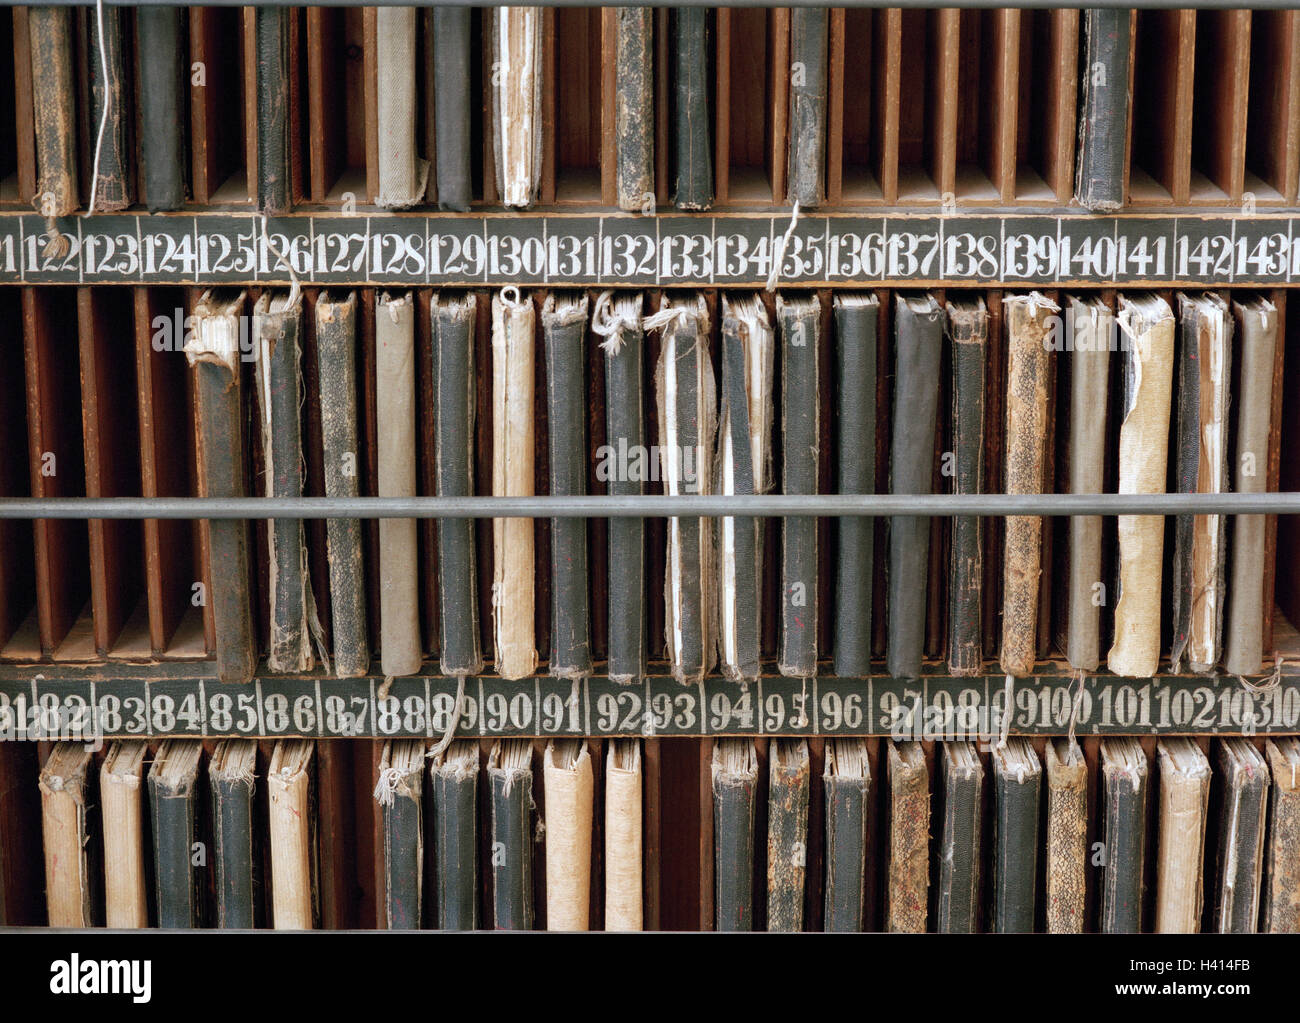 Weaving mill, shelf, detail, sample books, numbers, nostalgically, economy, industry, craft, handicraft, manual - Stock Image